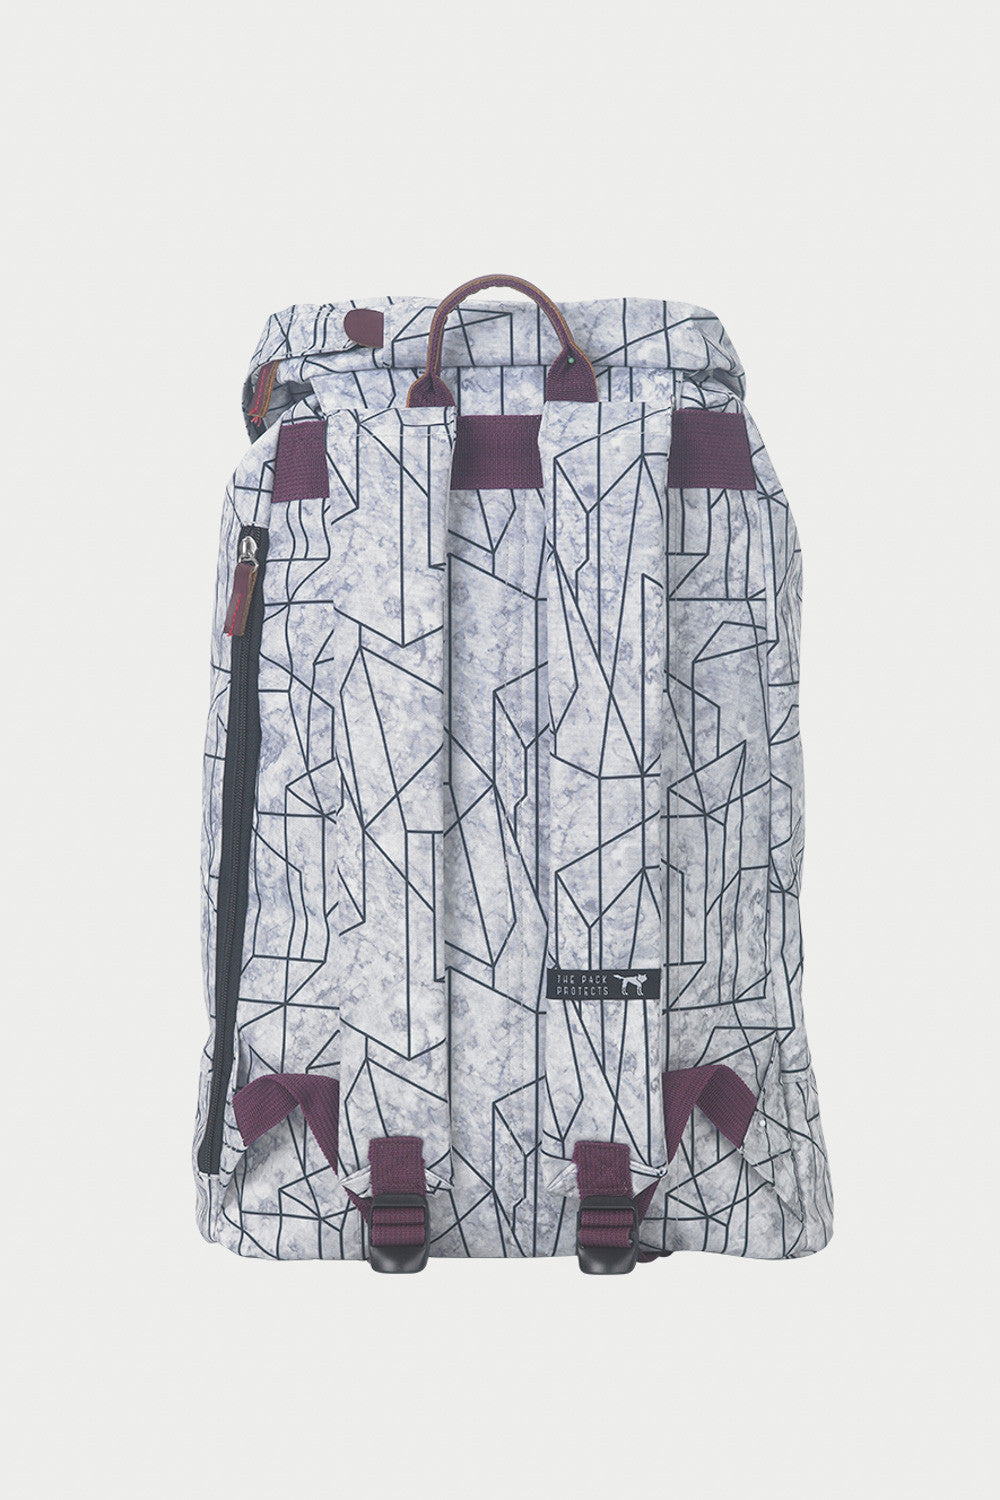 GEOMETRIC MARBLE PREMIUM BACKPACK